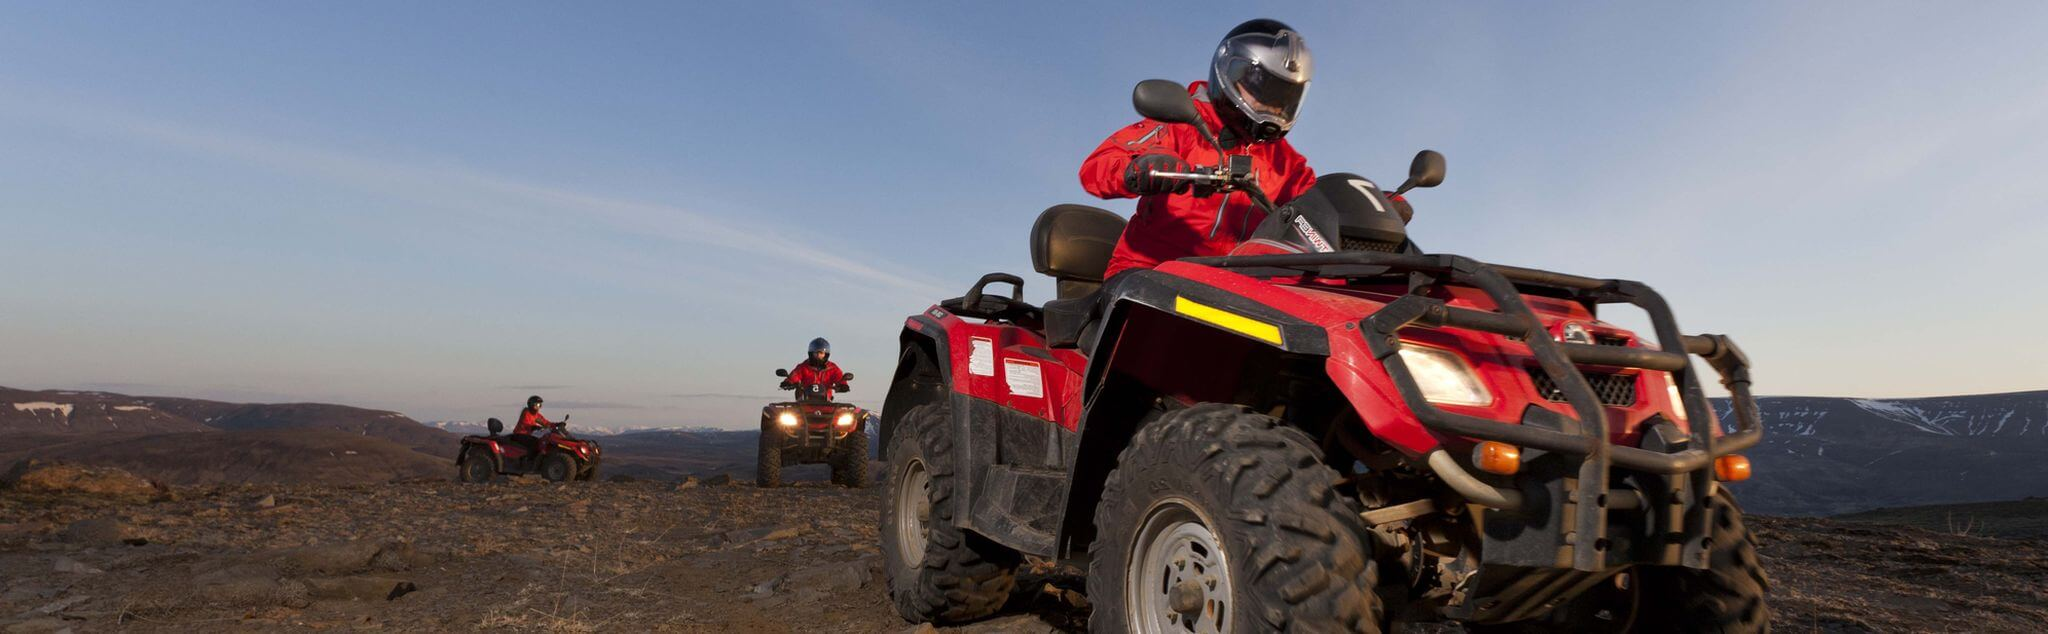 Quad Biking in Navarra